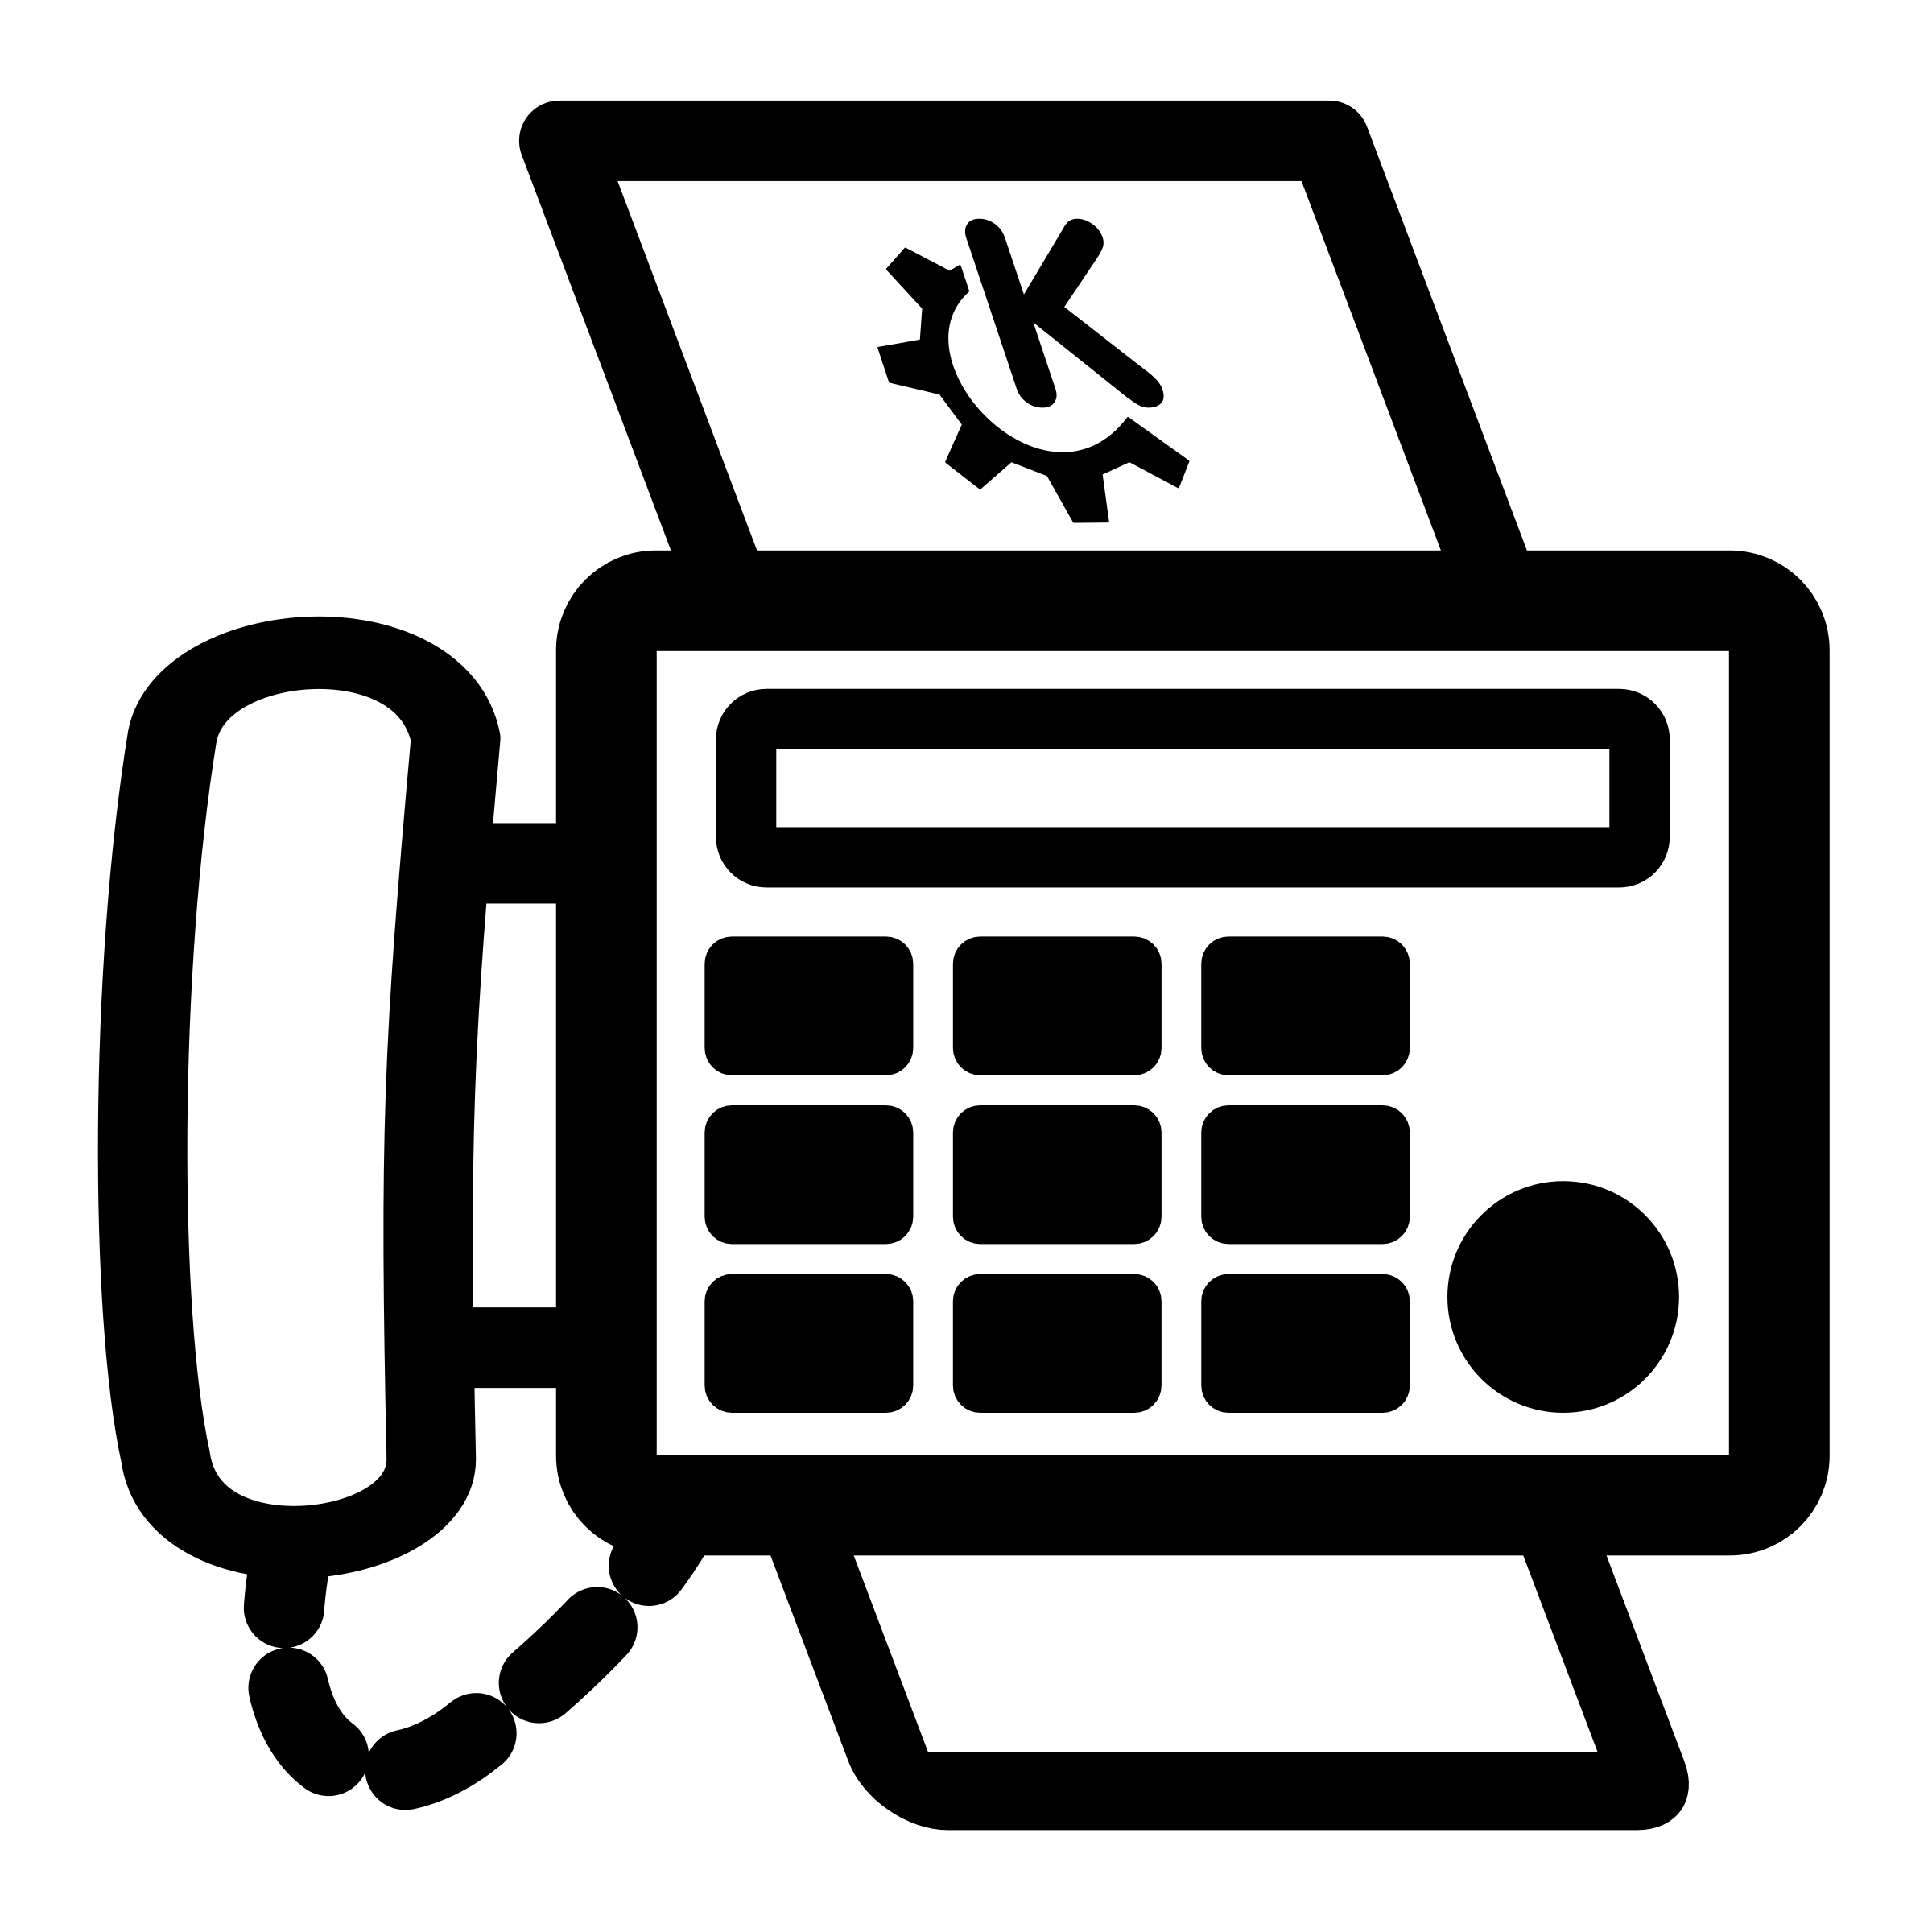 Print and Fax Icon-Print and Fax Icon-17